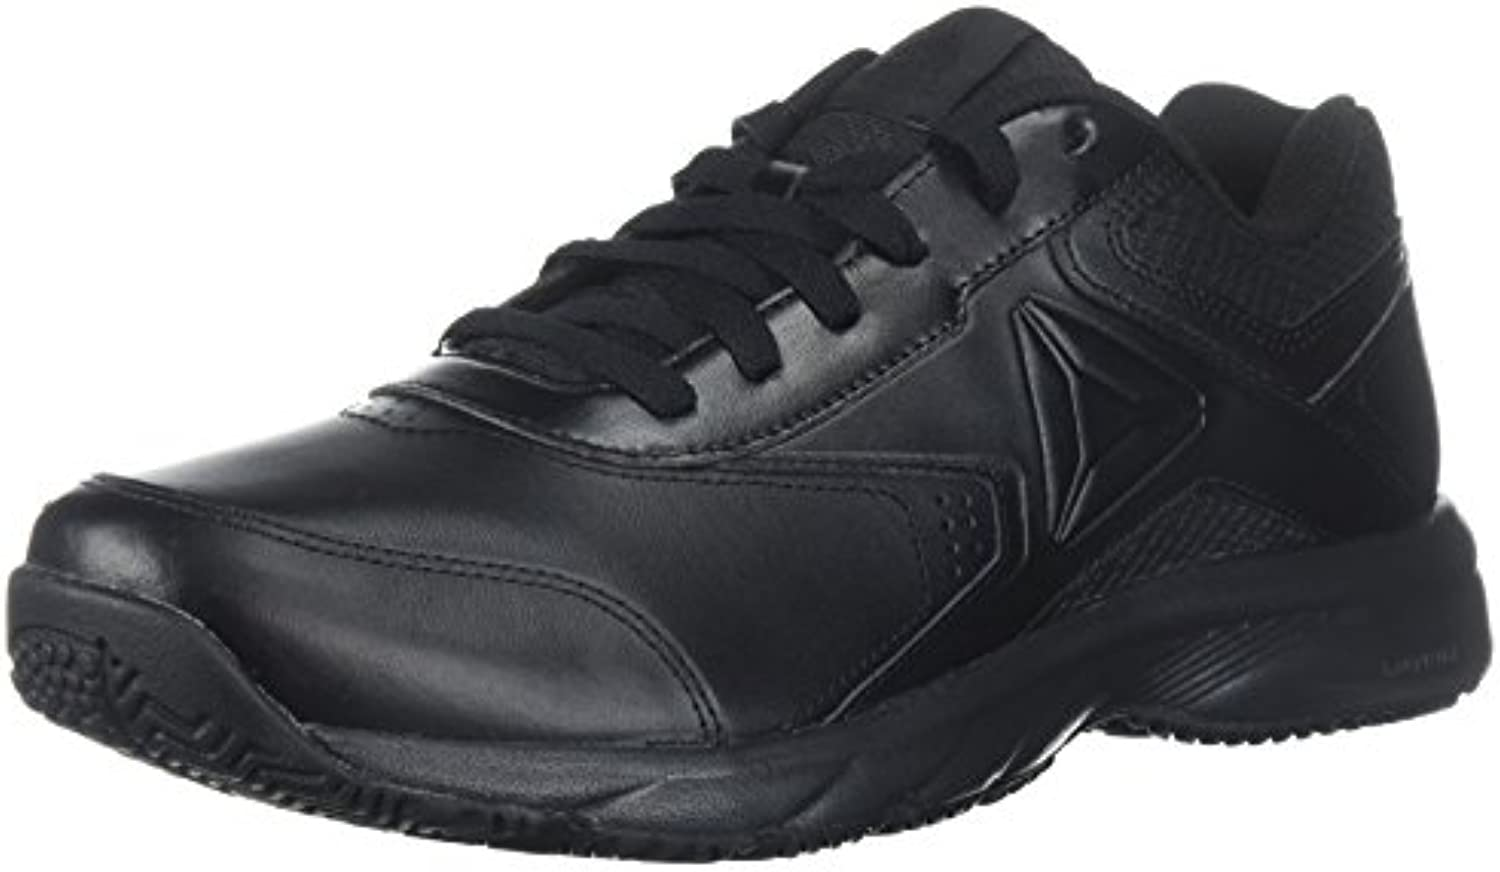 Reebok ReebokWork N Cushion 3.0   Work N Cushion 3.0 Herren